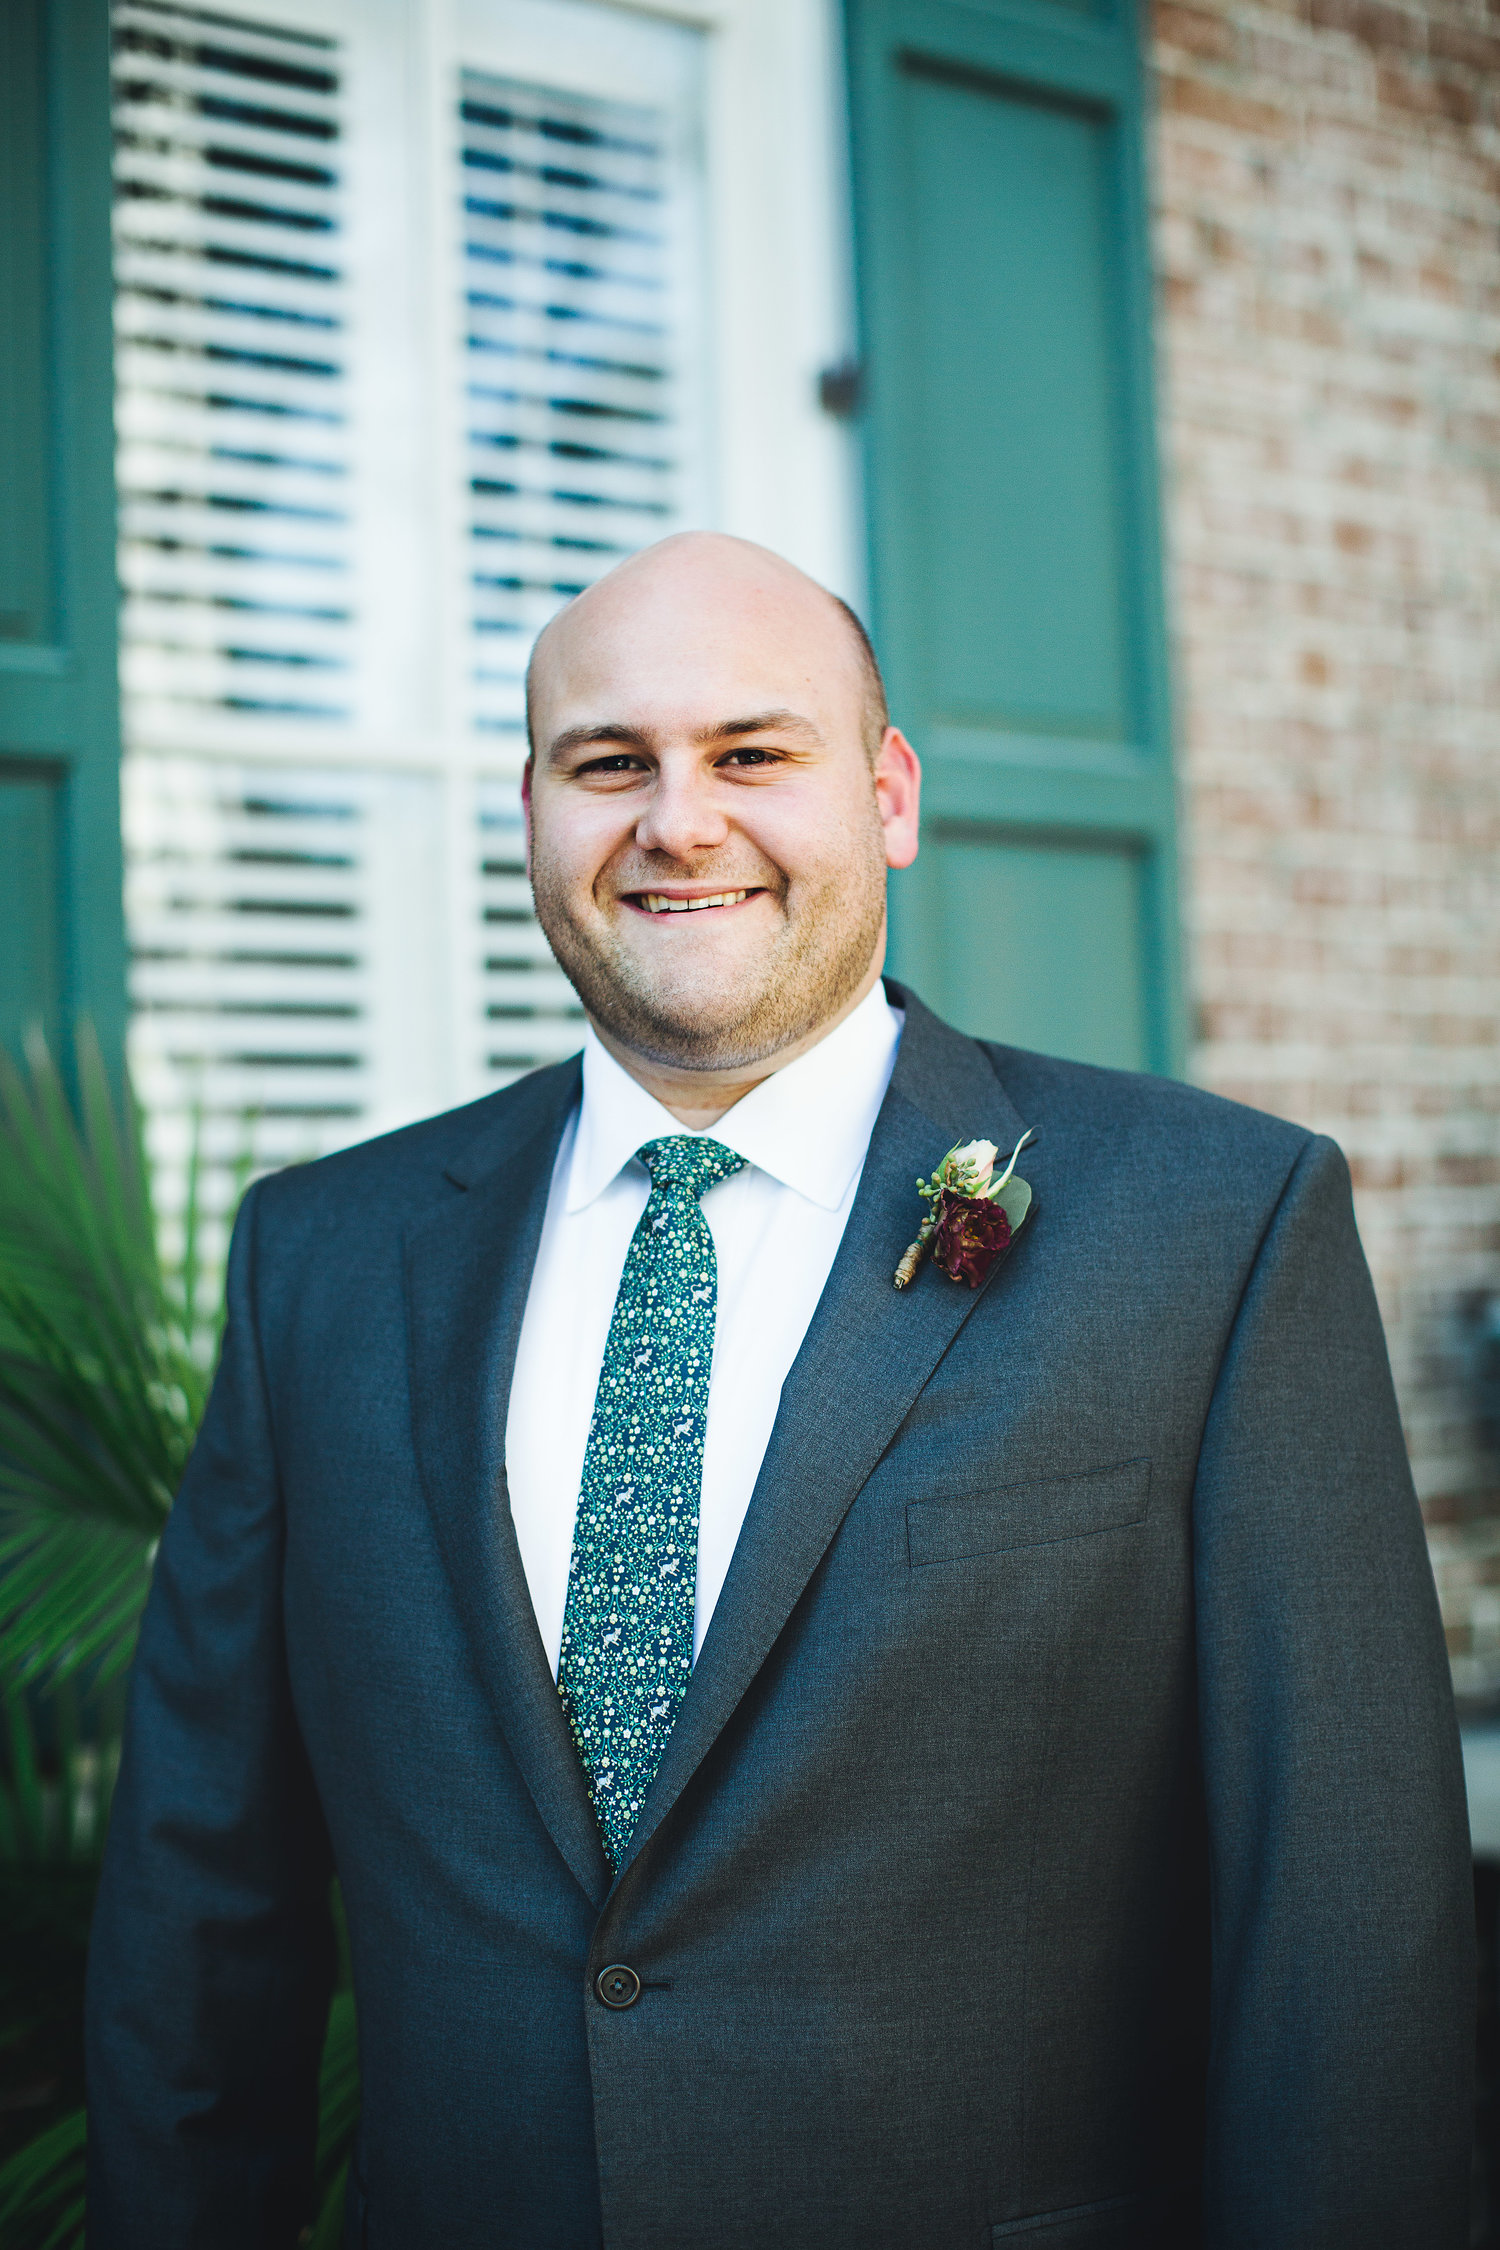 izzy-hudgins-photography-savannah-wedding-ivory-and-beau-bridal-boutique-savannah-wedding-planner-colonial-house-of-flowers-forsyth-park-wedding-old-fort-jackson-wedding-squidwed-films-savannah-boutique-savannah-weddings-9.jpg